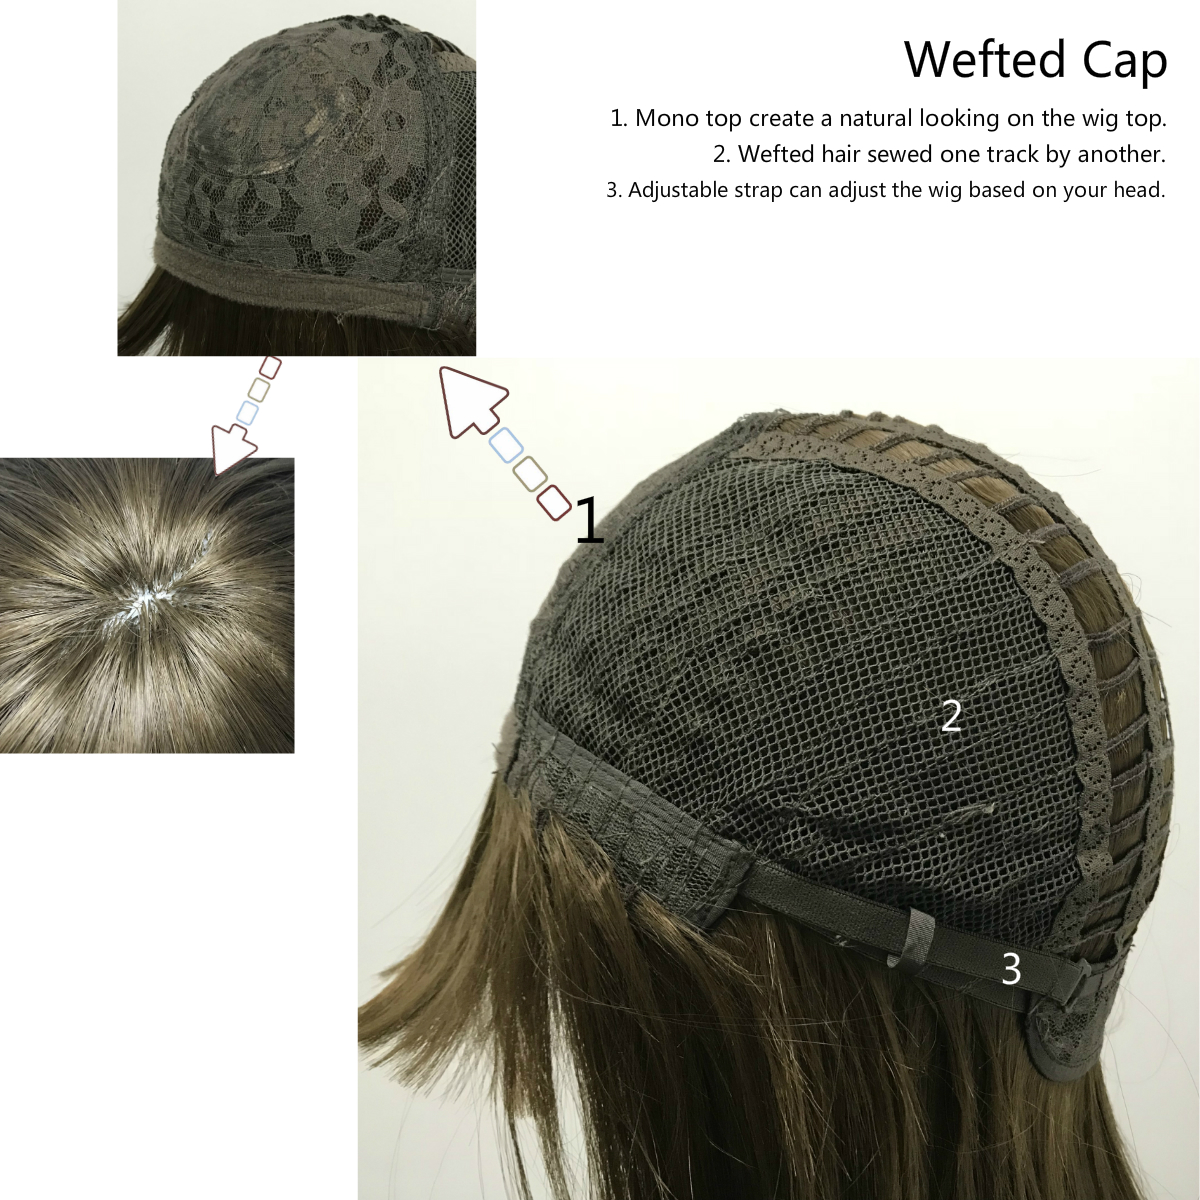 mono top wefted cap construction, capless wig